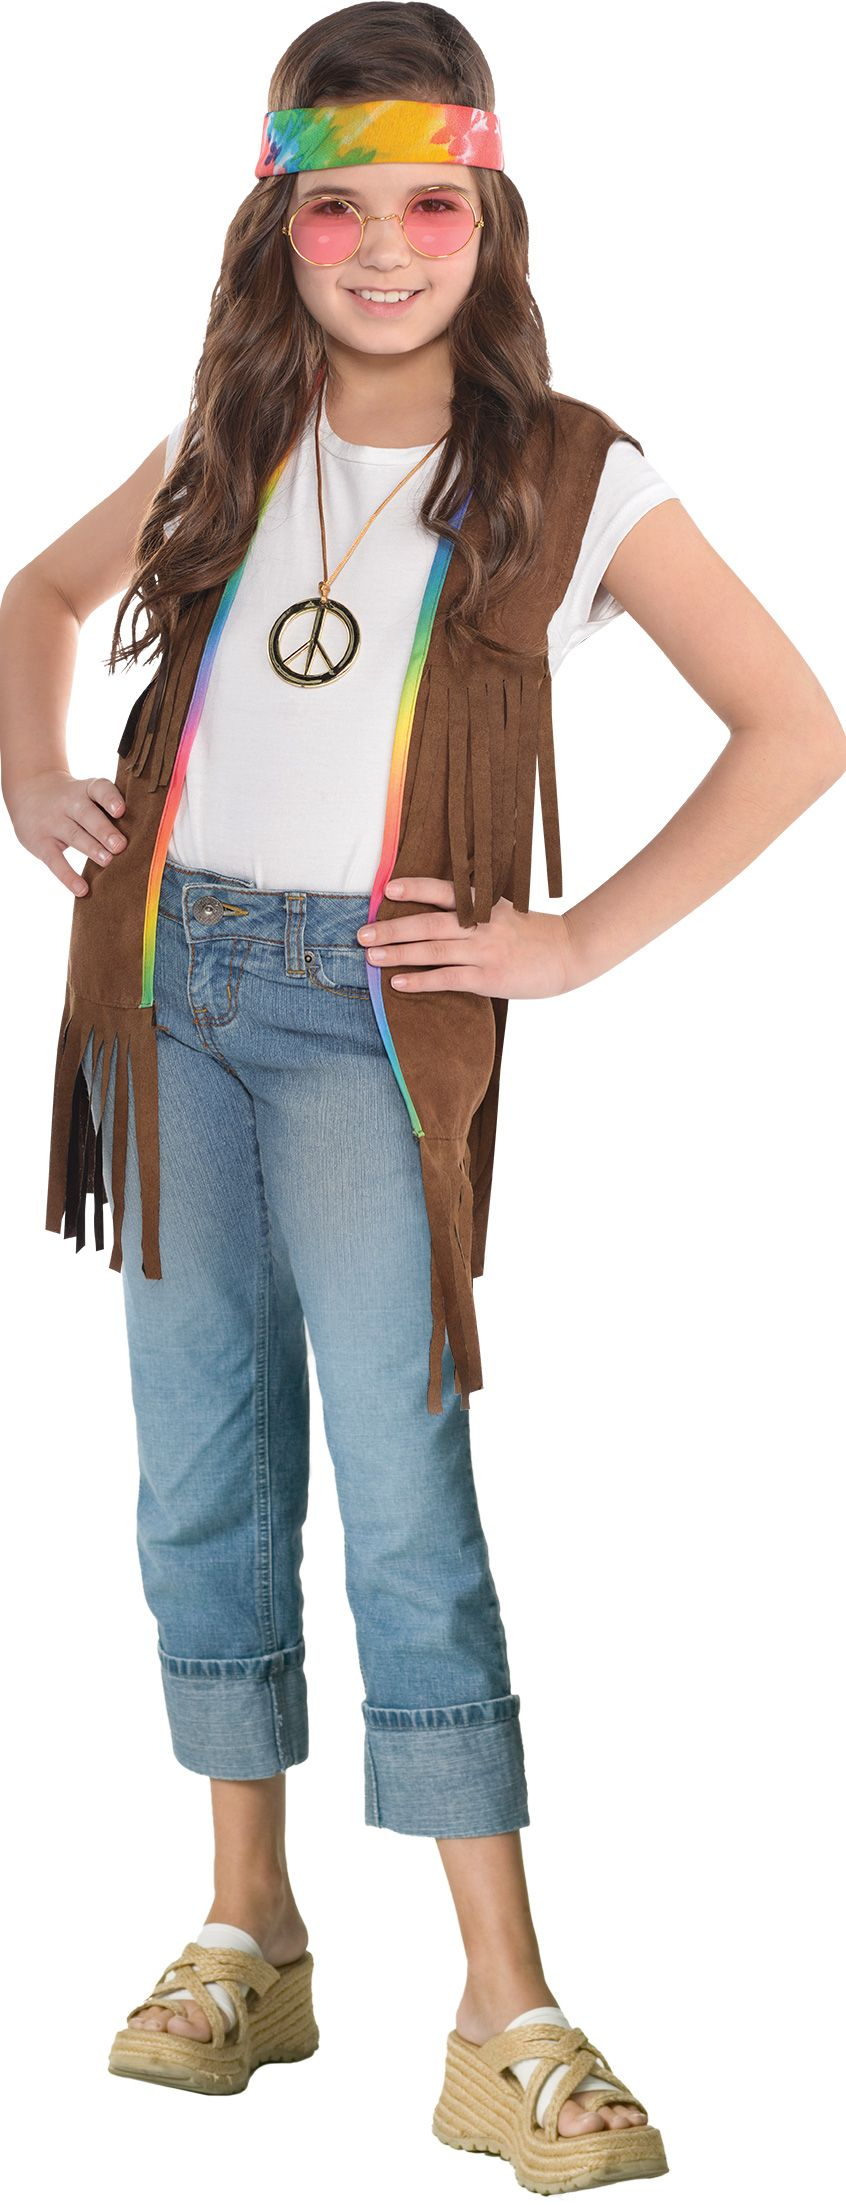 Create Your Own Girlsu0026#39; Hippie Costume Accessories | Party City